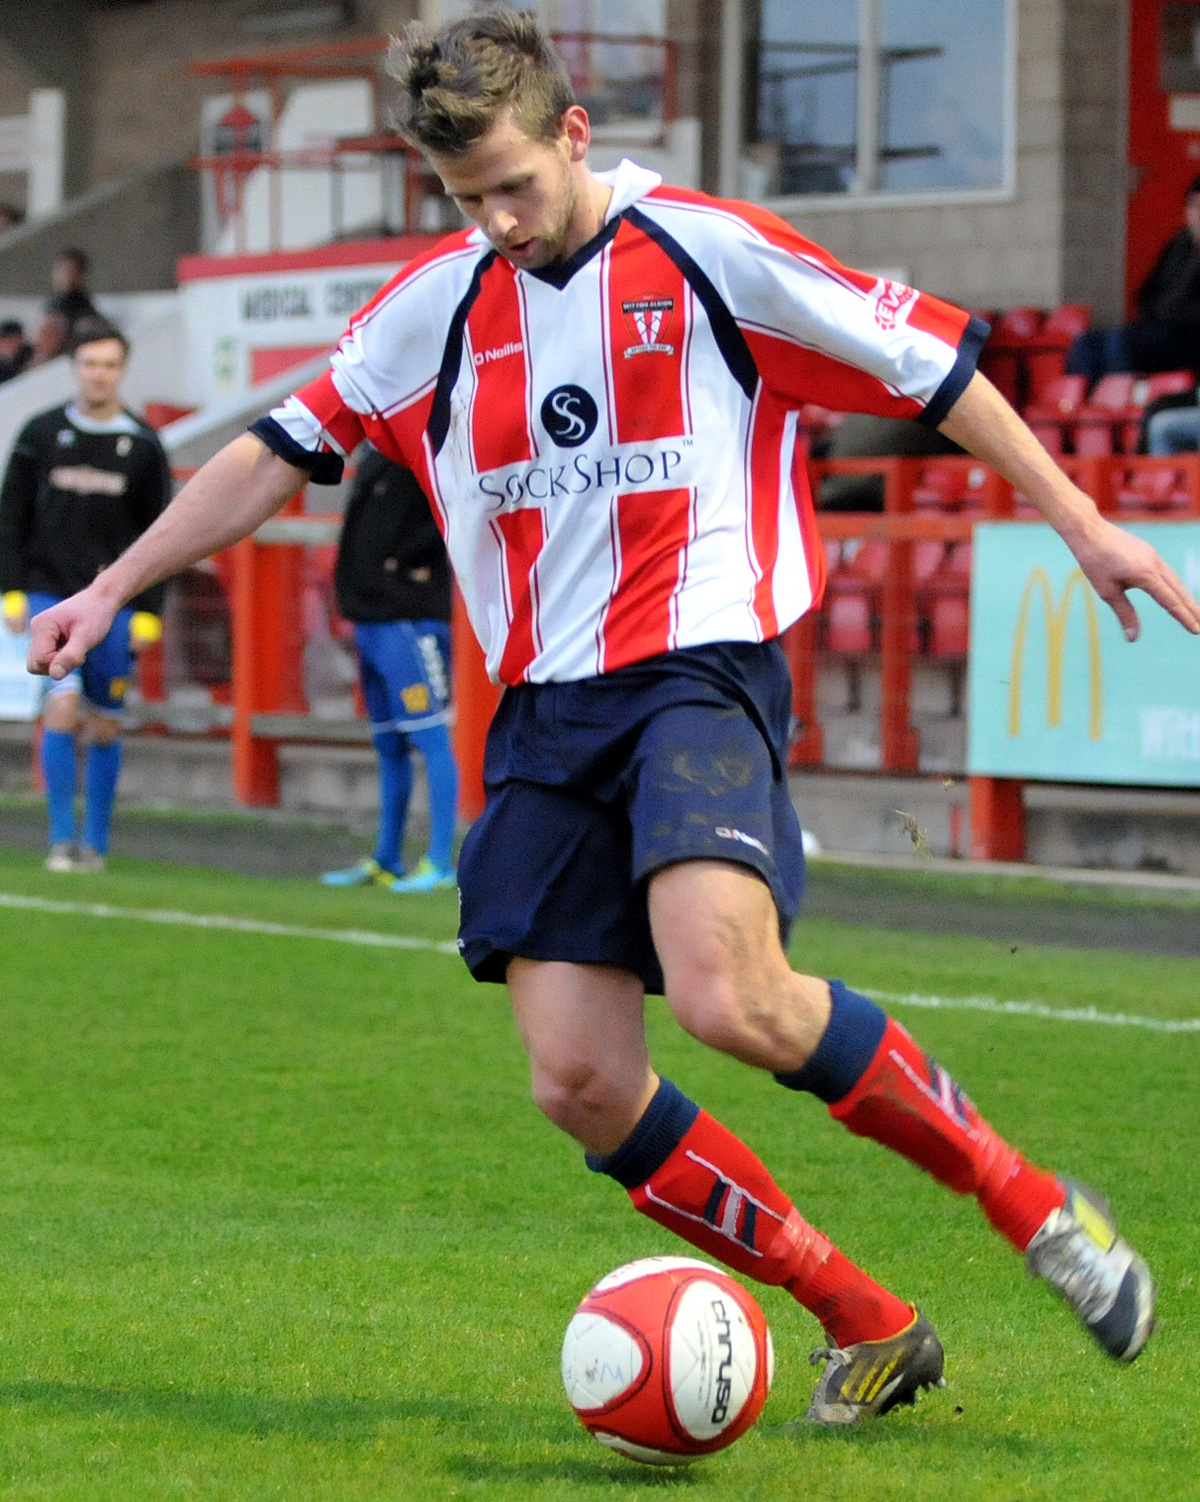 Ally Brown made his 50th appearance for Witton Albion in Tuesday's cup exit